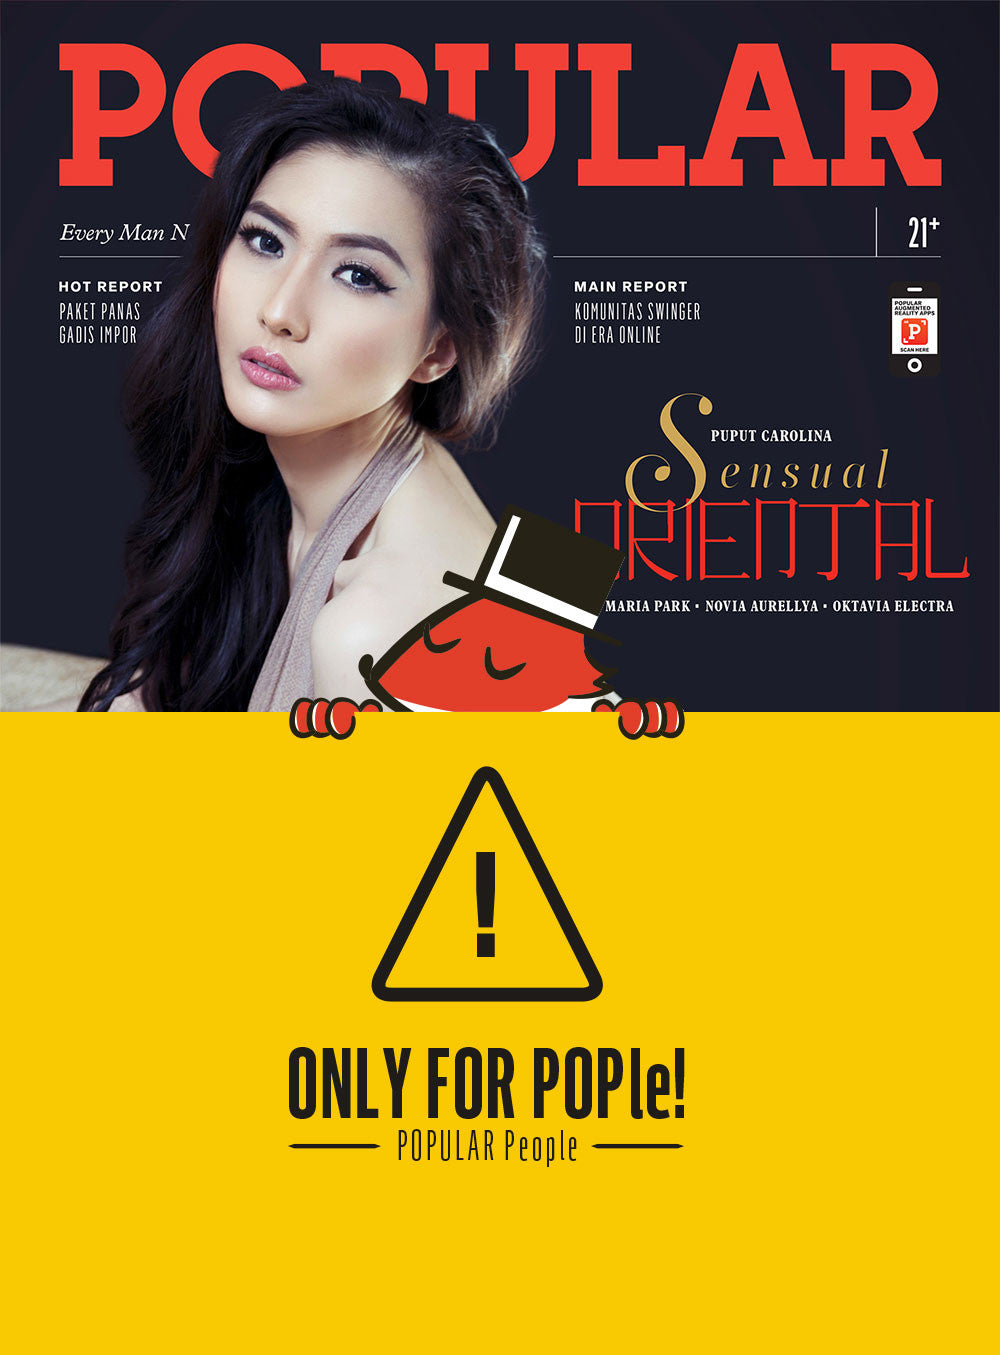 Majalah POPULAR Indonesia | Sensual Oriental | December 2015 Edition